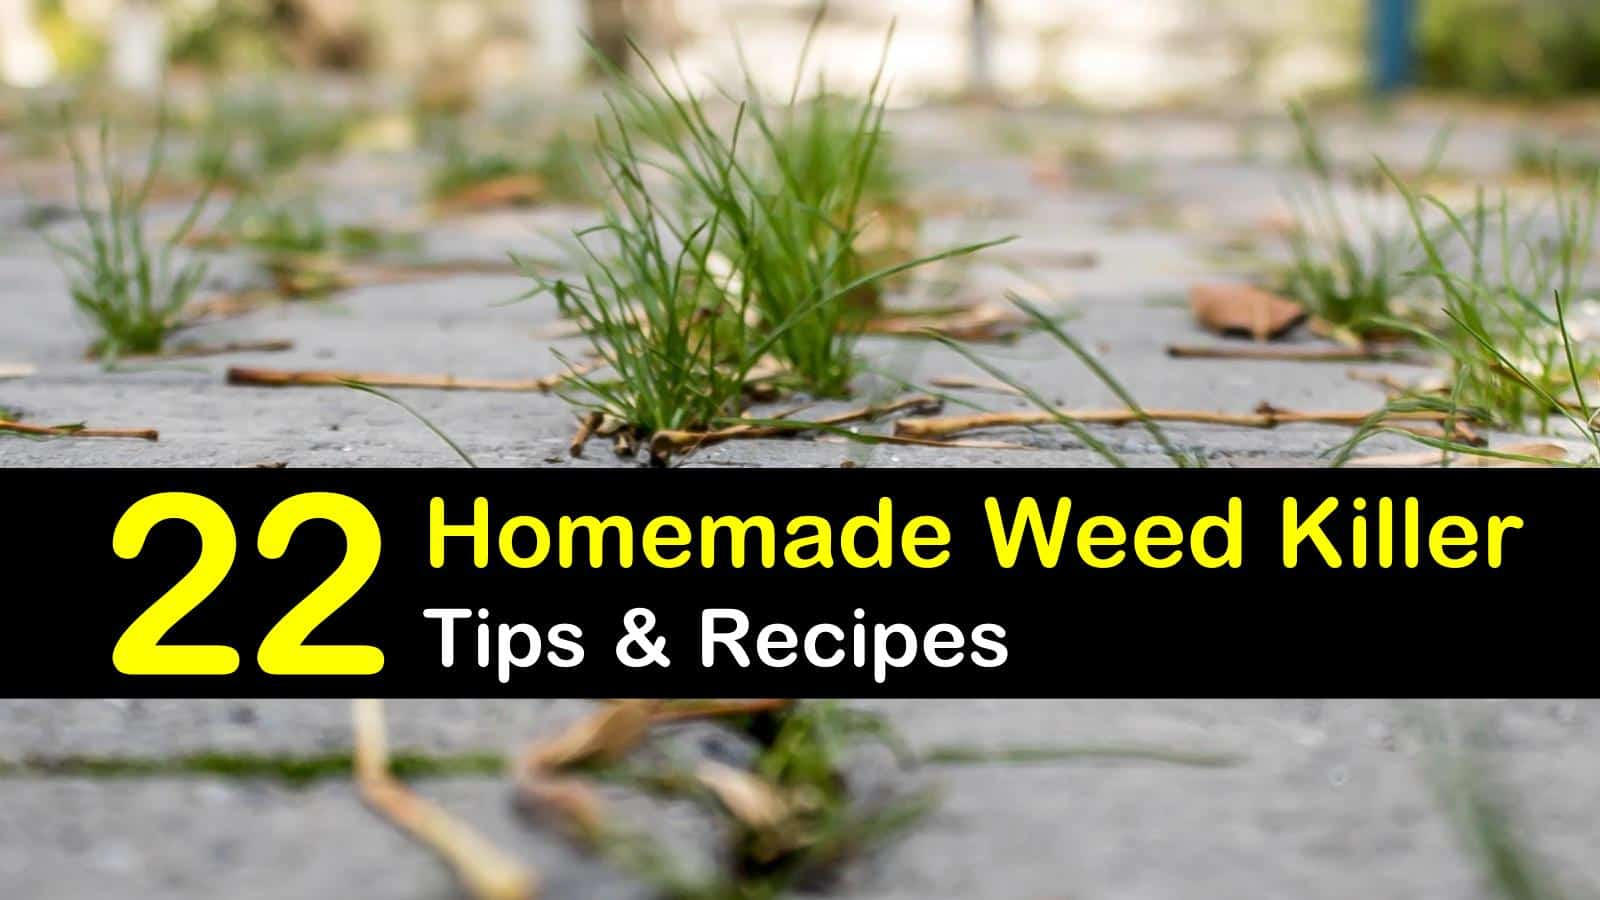 homemade weed killer titleimg1